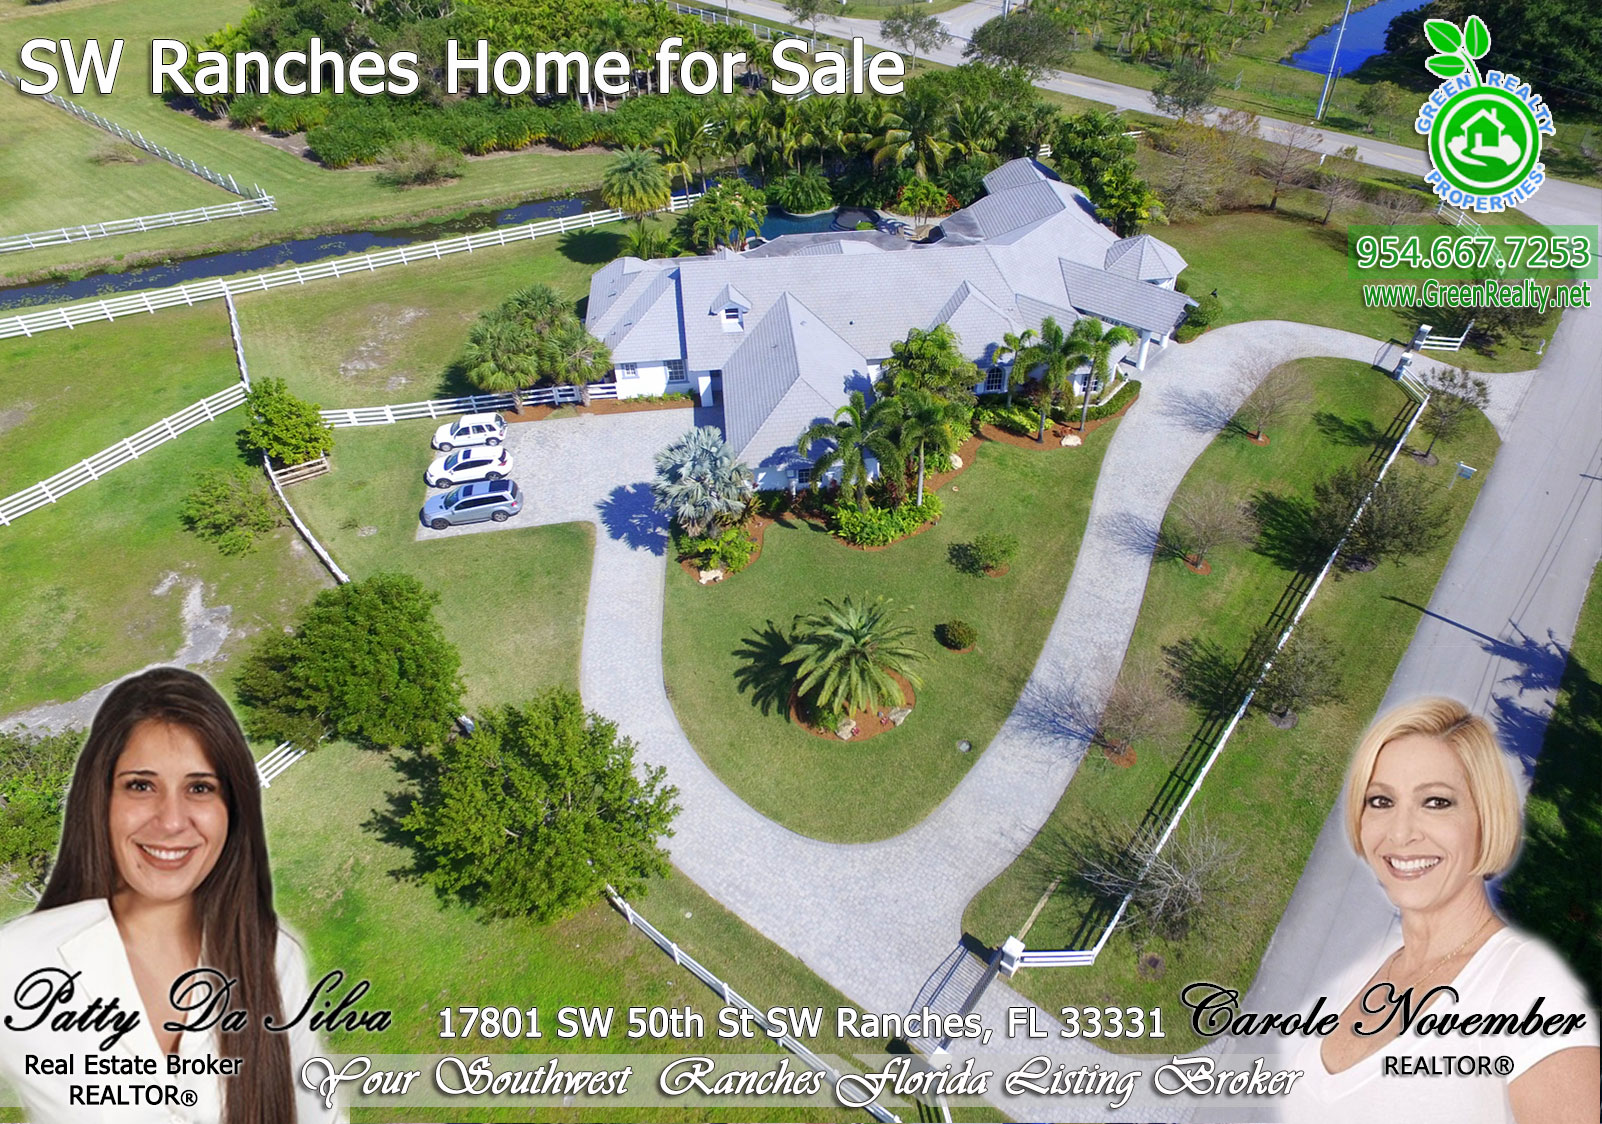 48 Luxury-Homes-in-Southwest-Ranches-FL-(5)